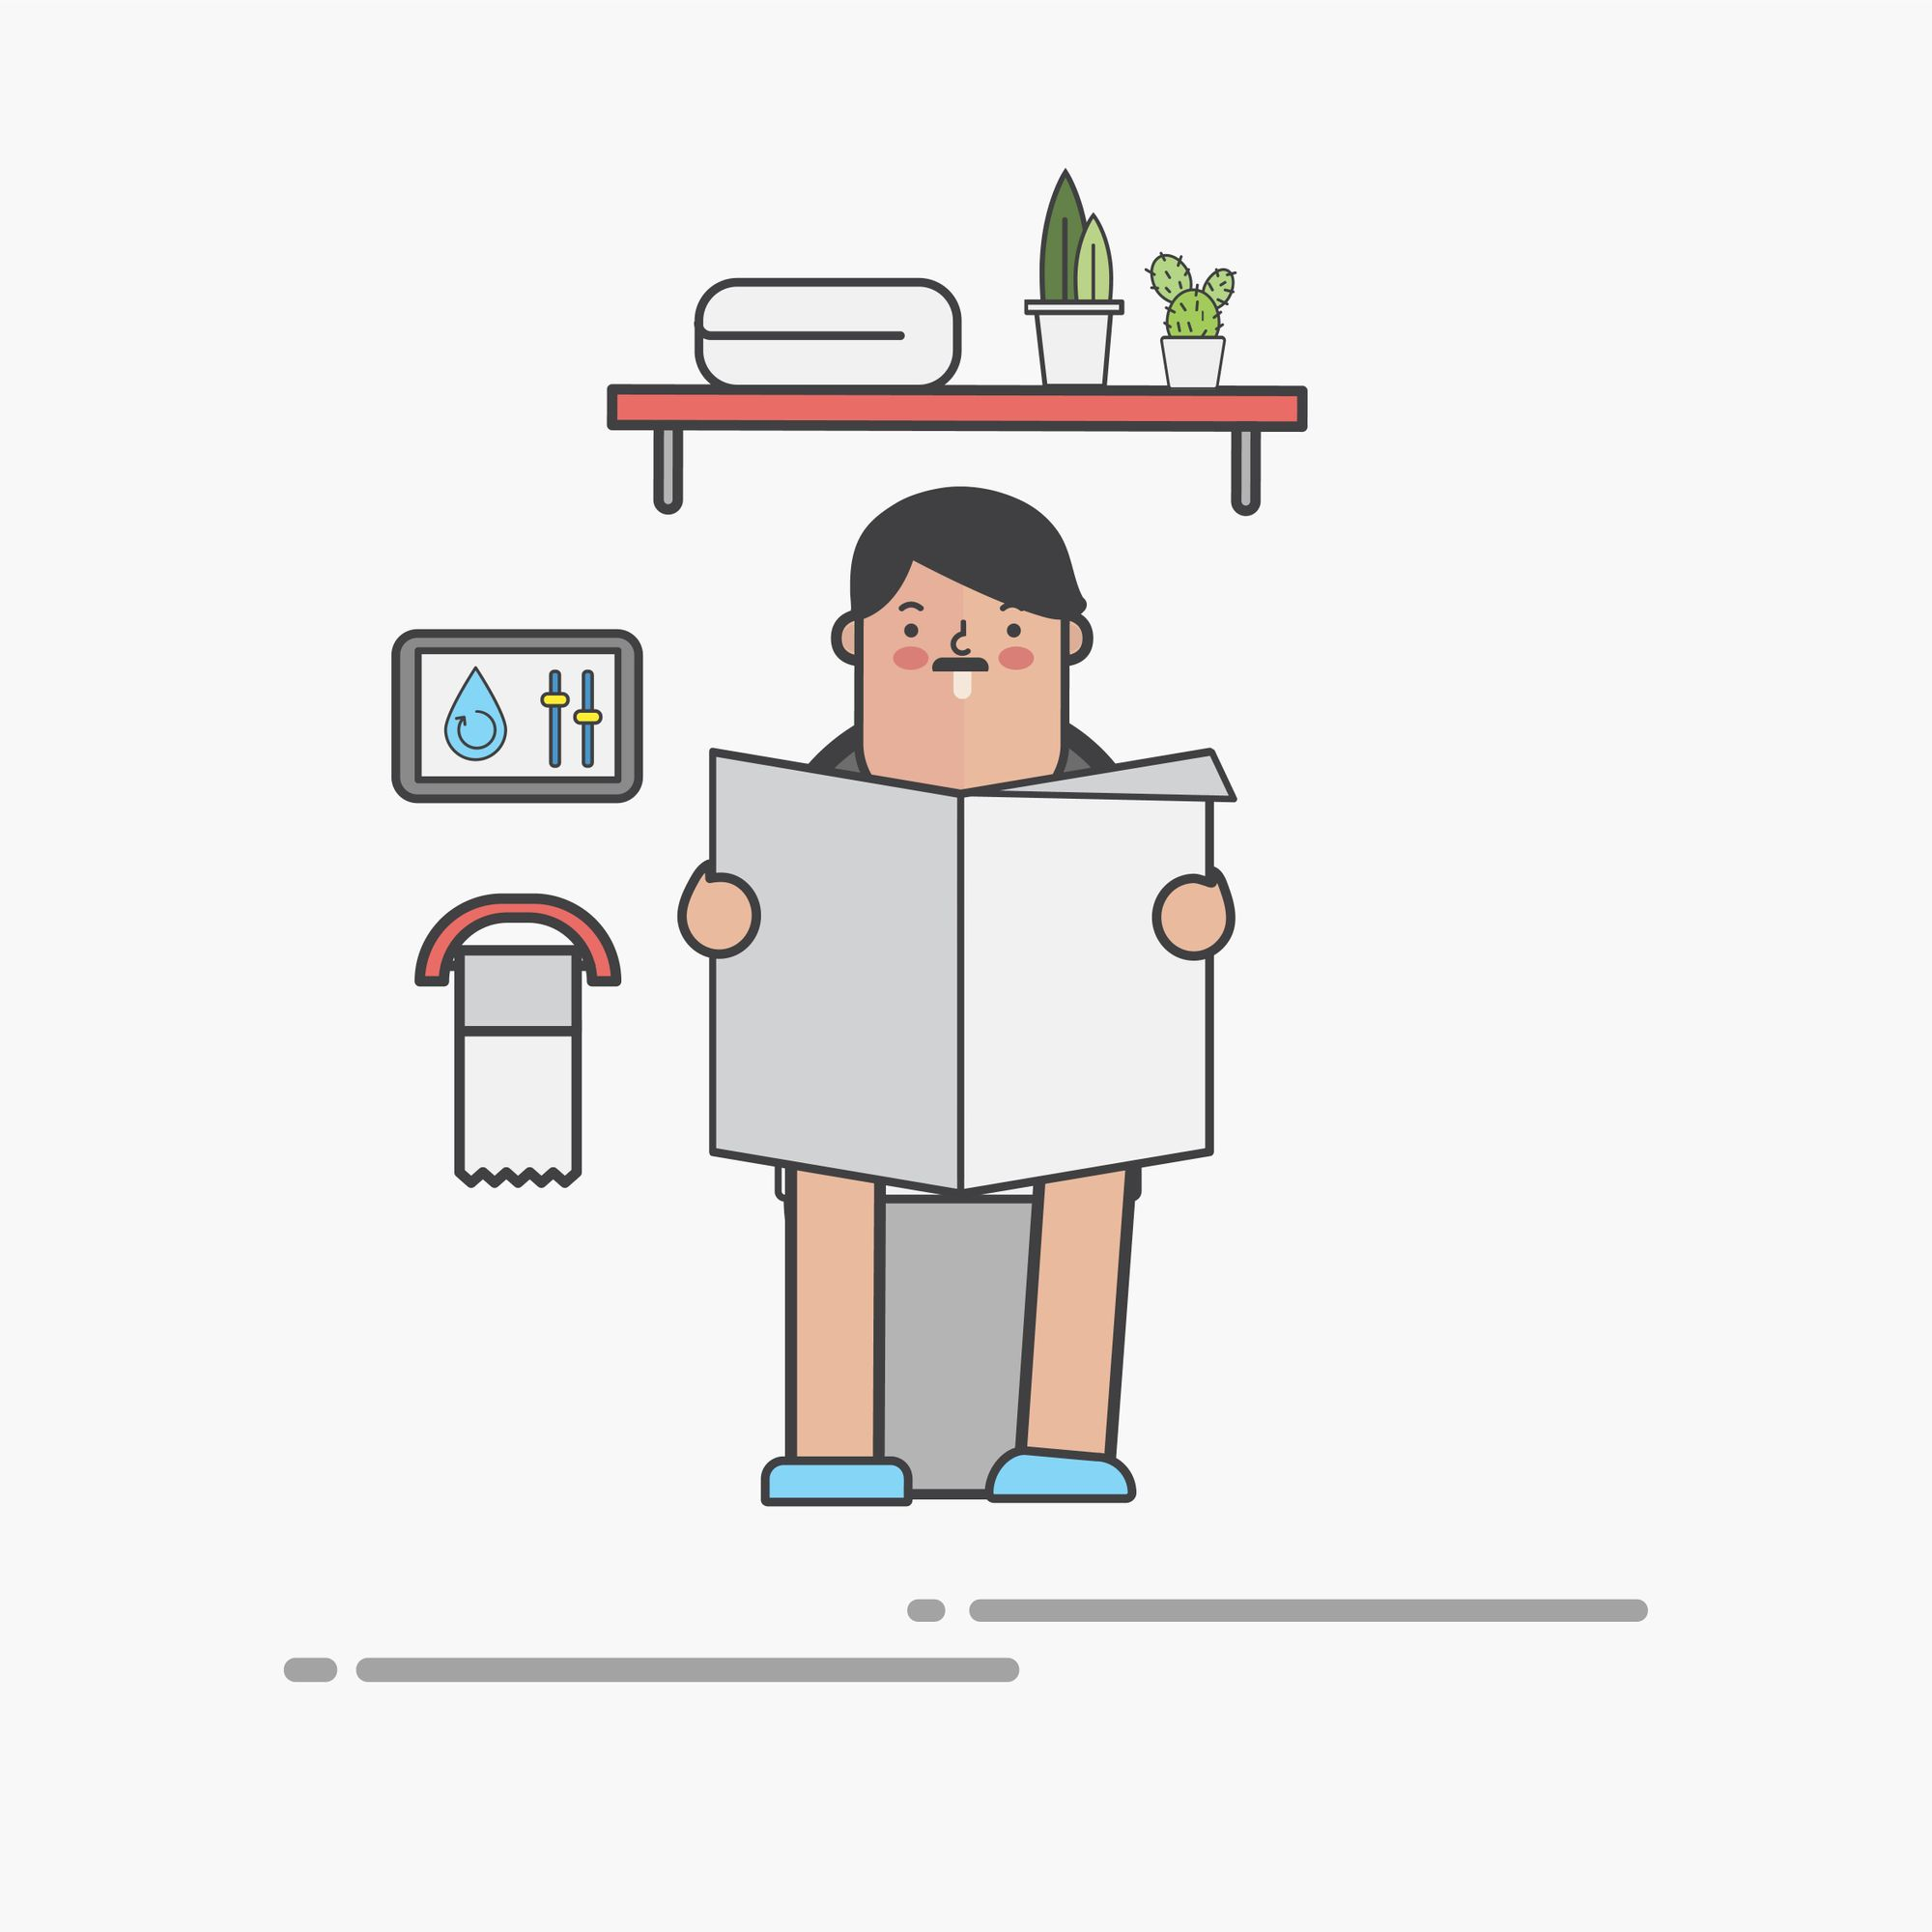 Toilet-image-from-rawpixel-id-113797-jpeg